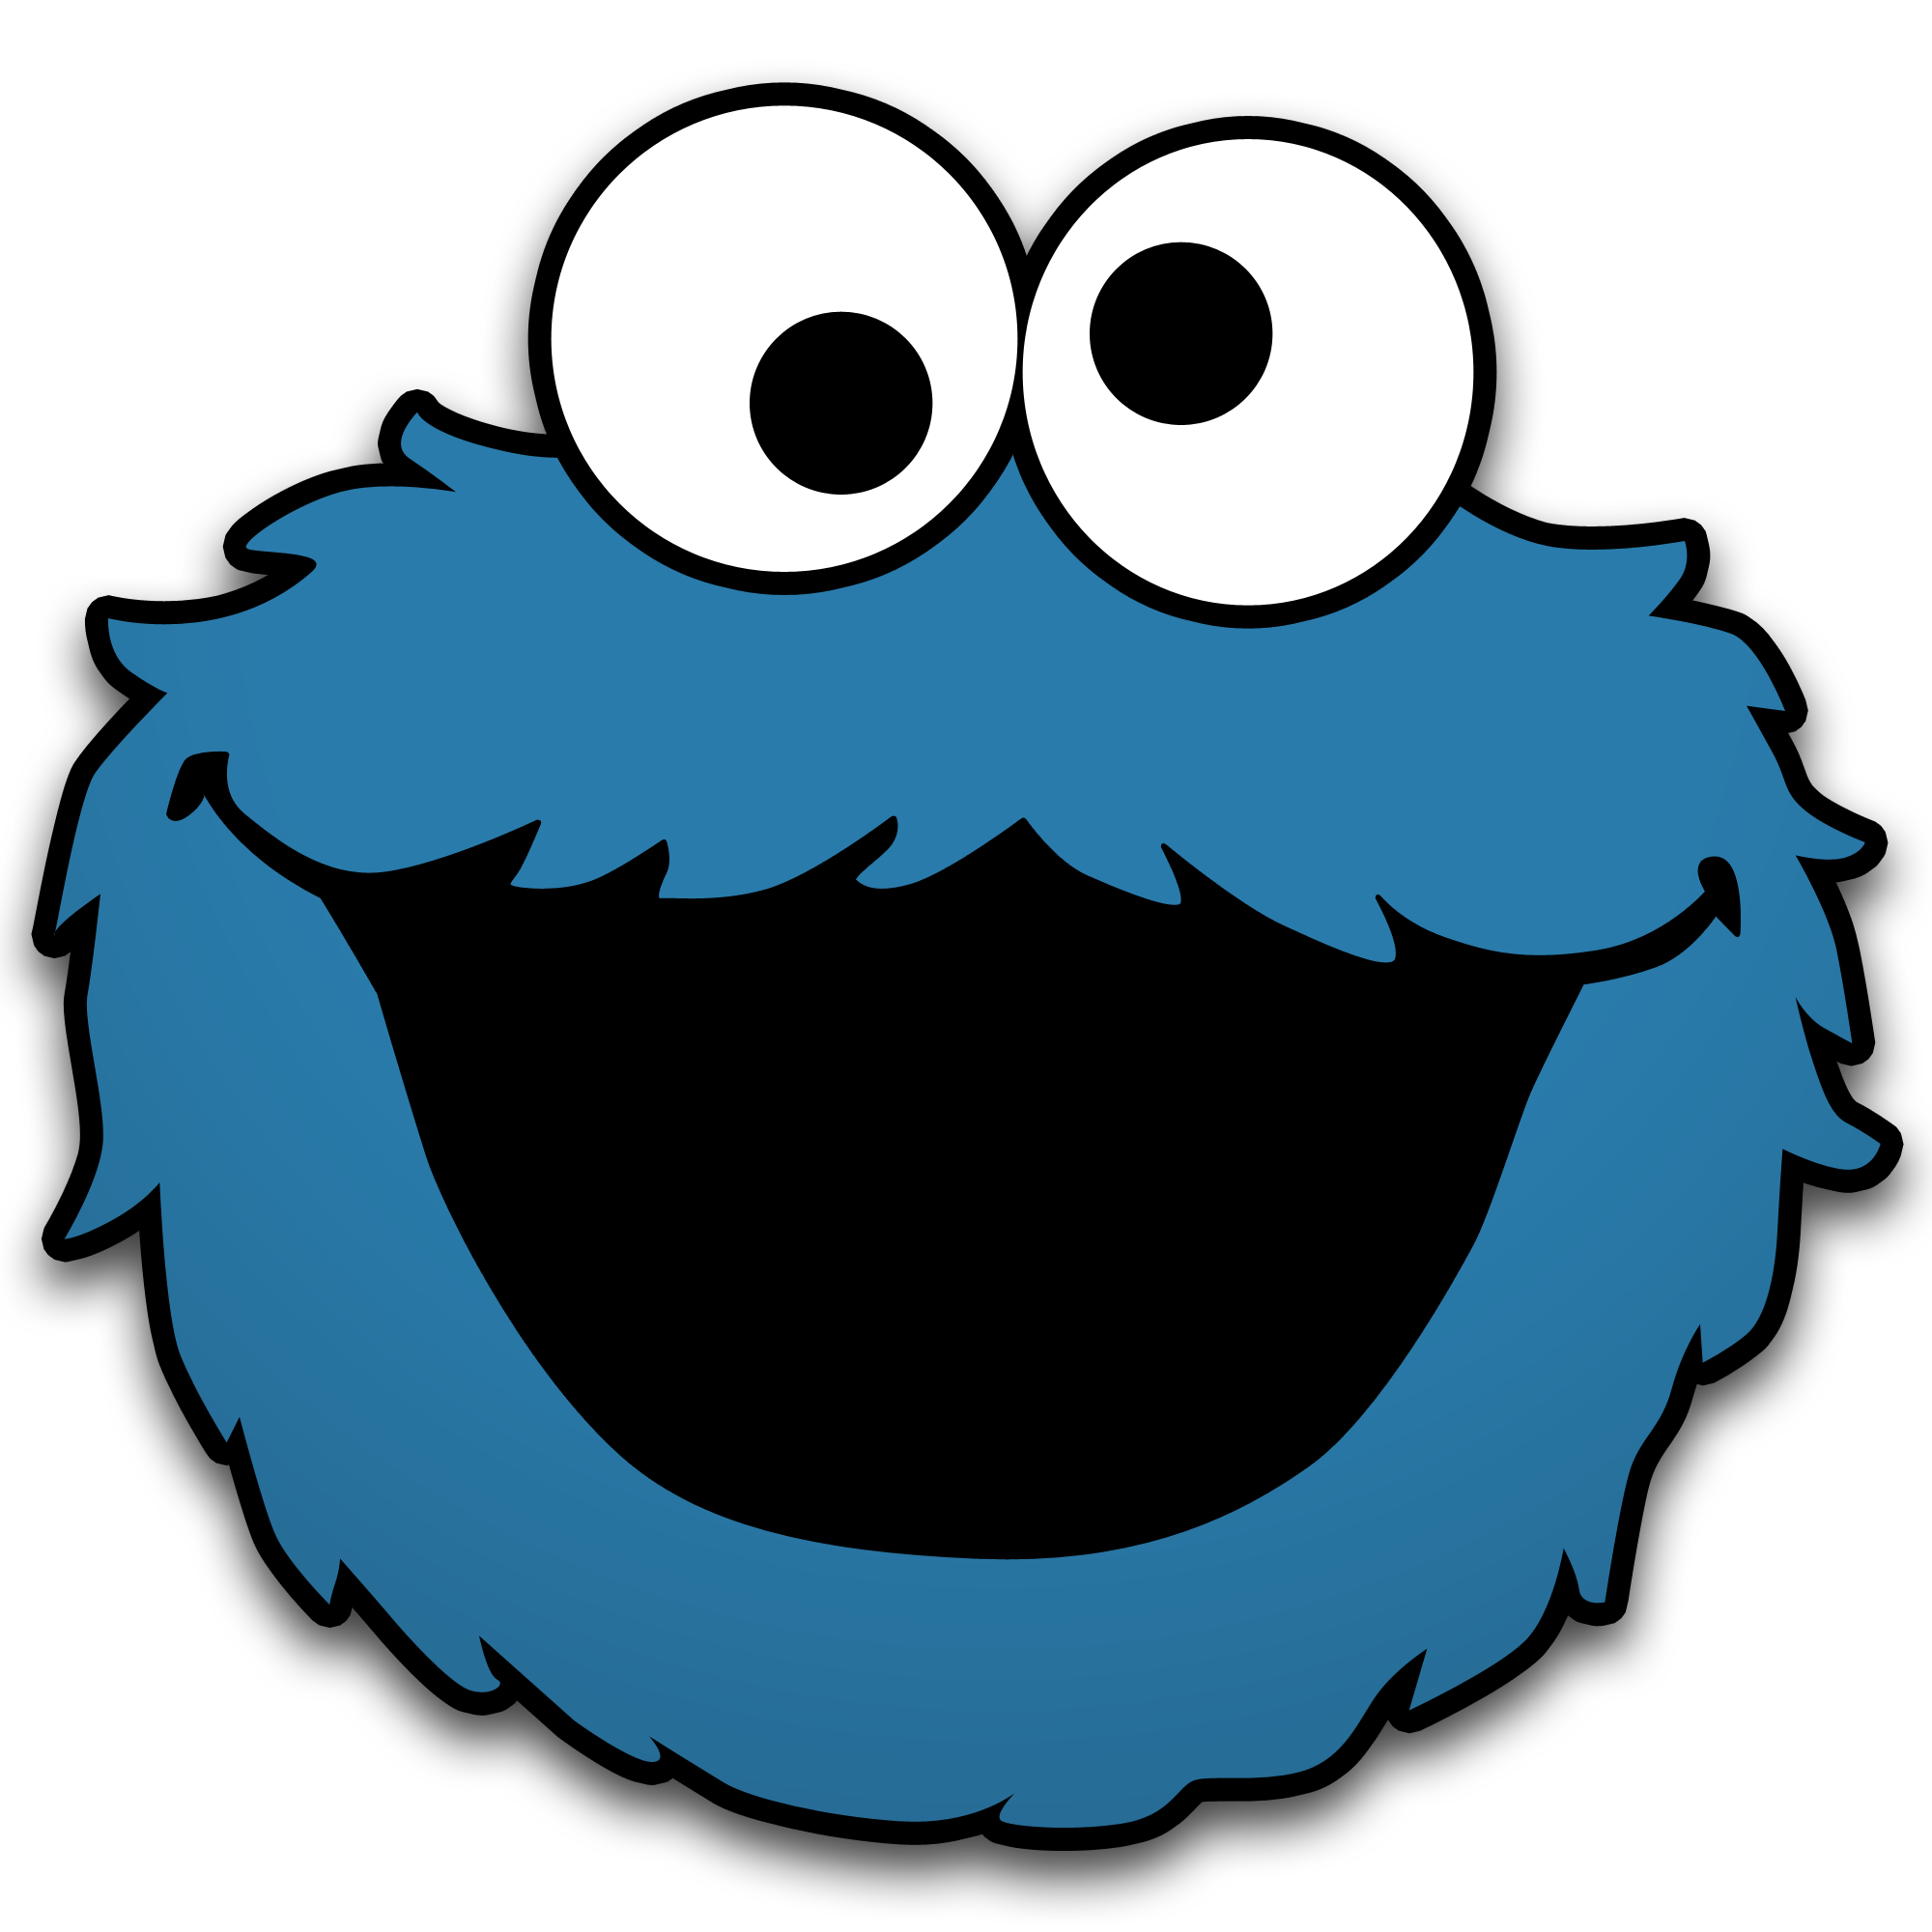 Elmo face png. Cookie monster by neorame